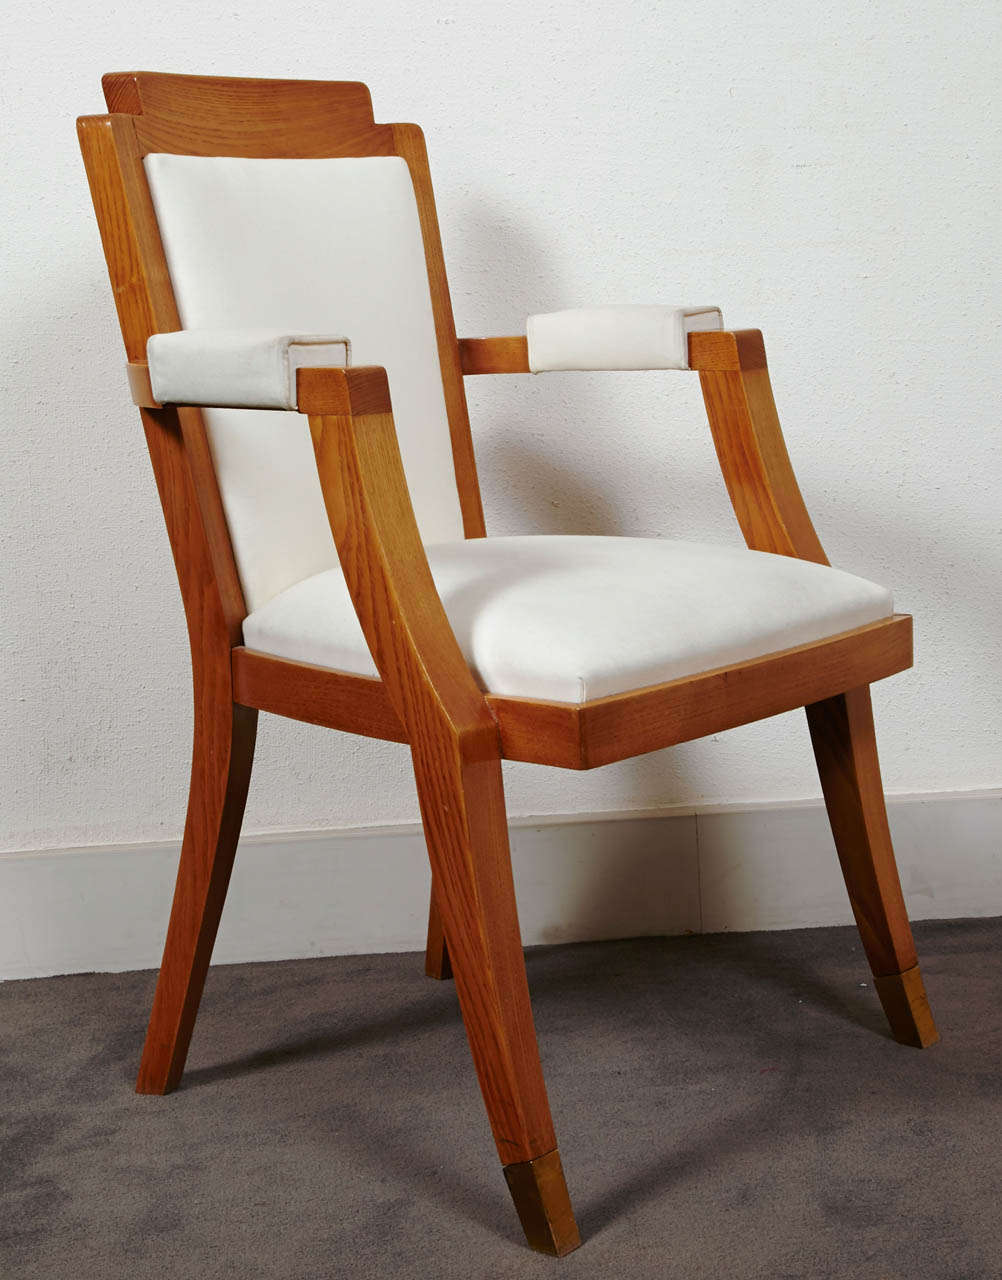 Pair of Beech Tree Armchairs by G. Darbois-Gaudin, 1949 For Sale 2